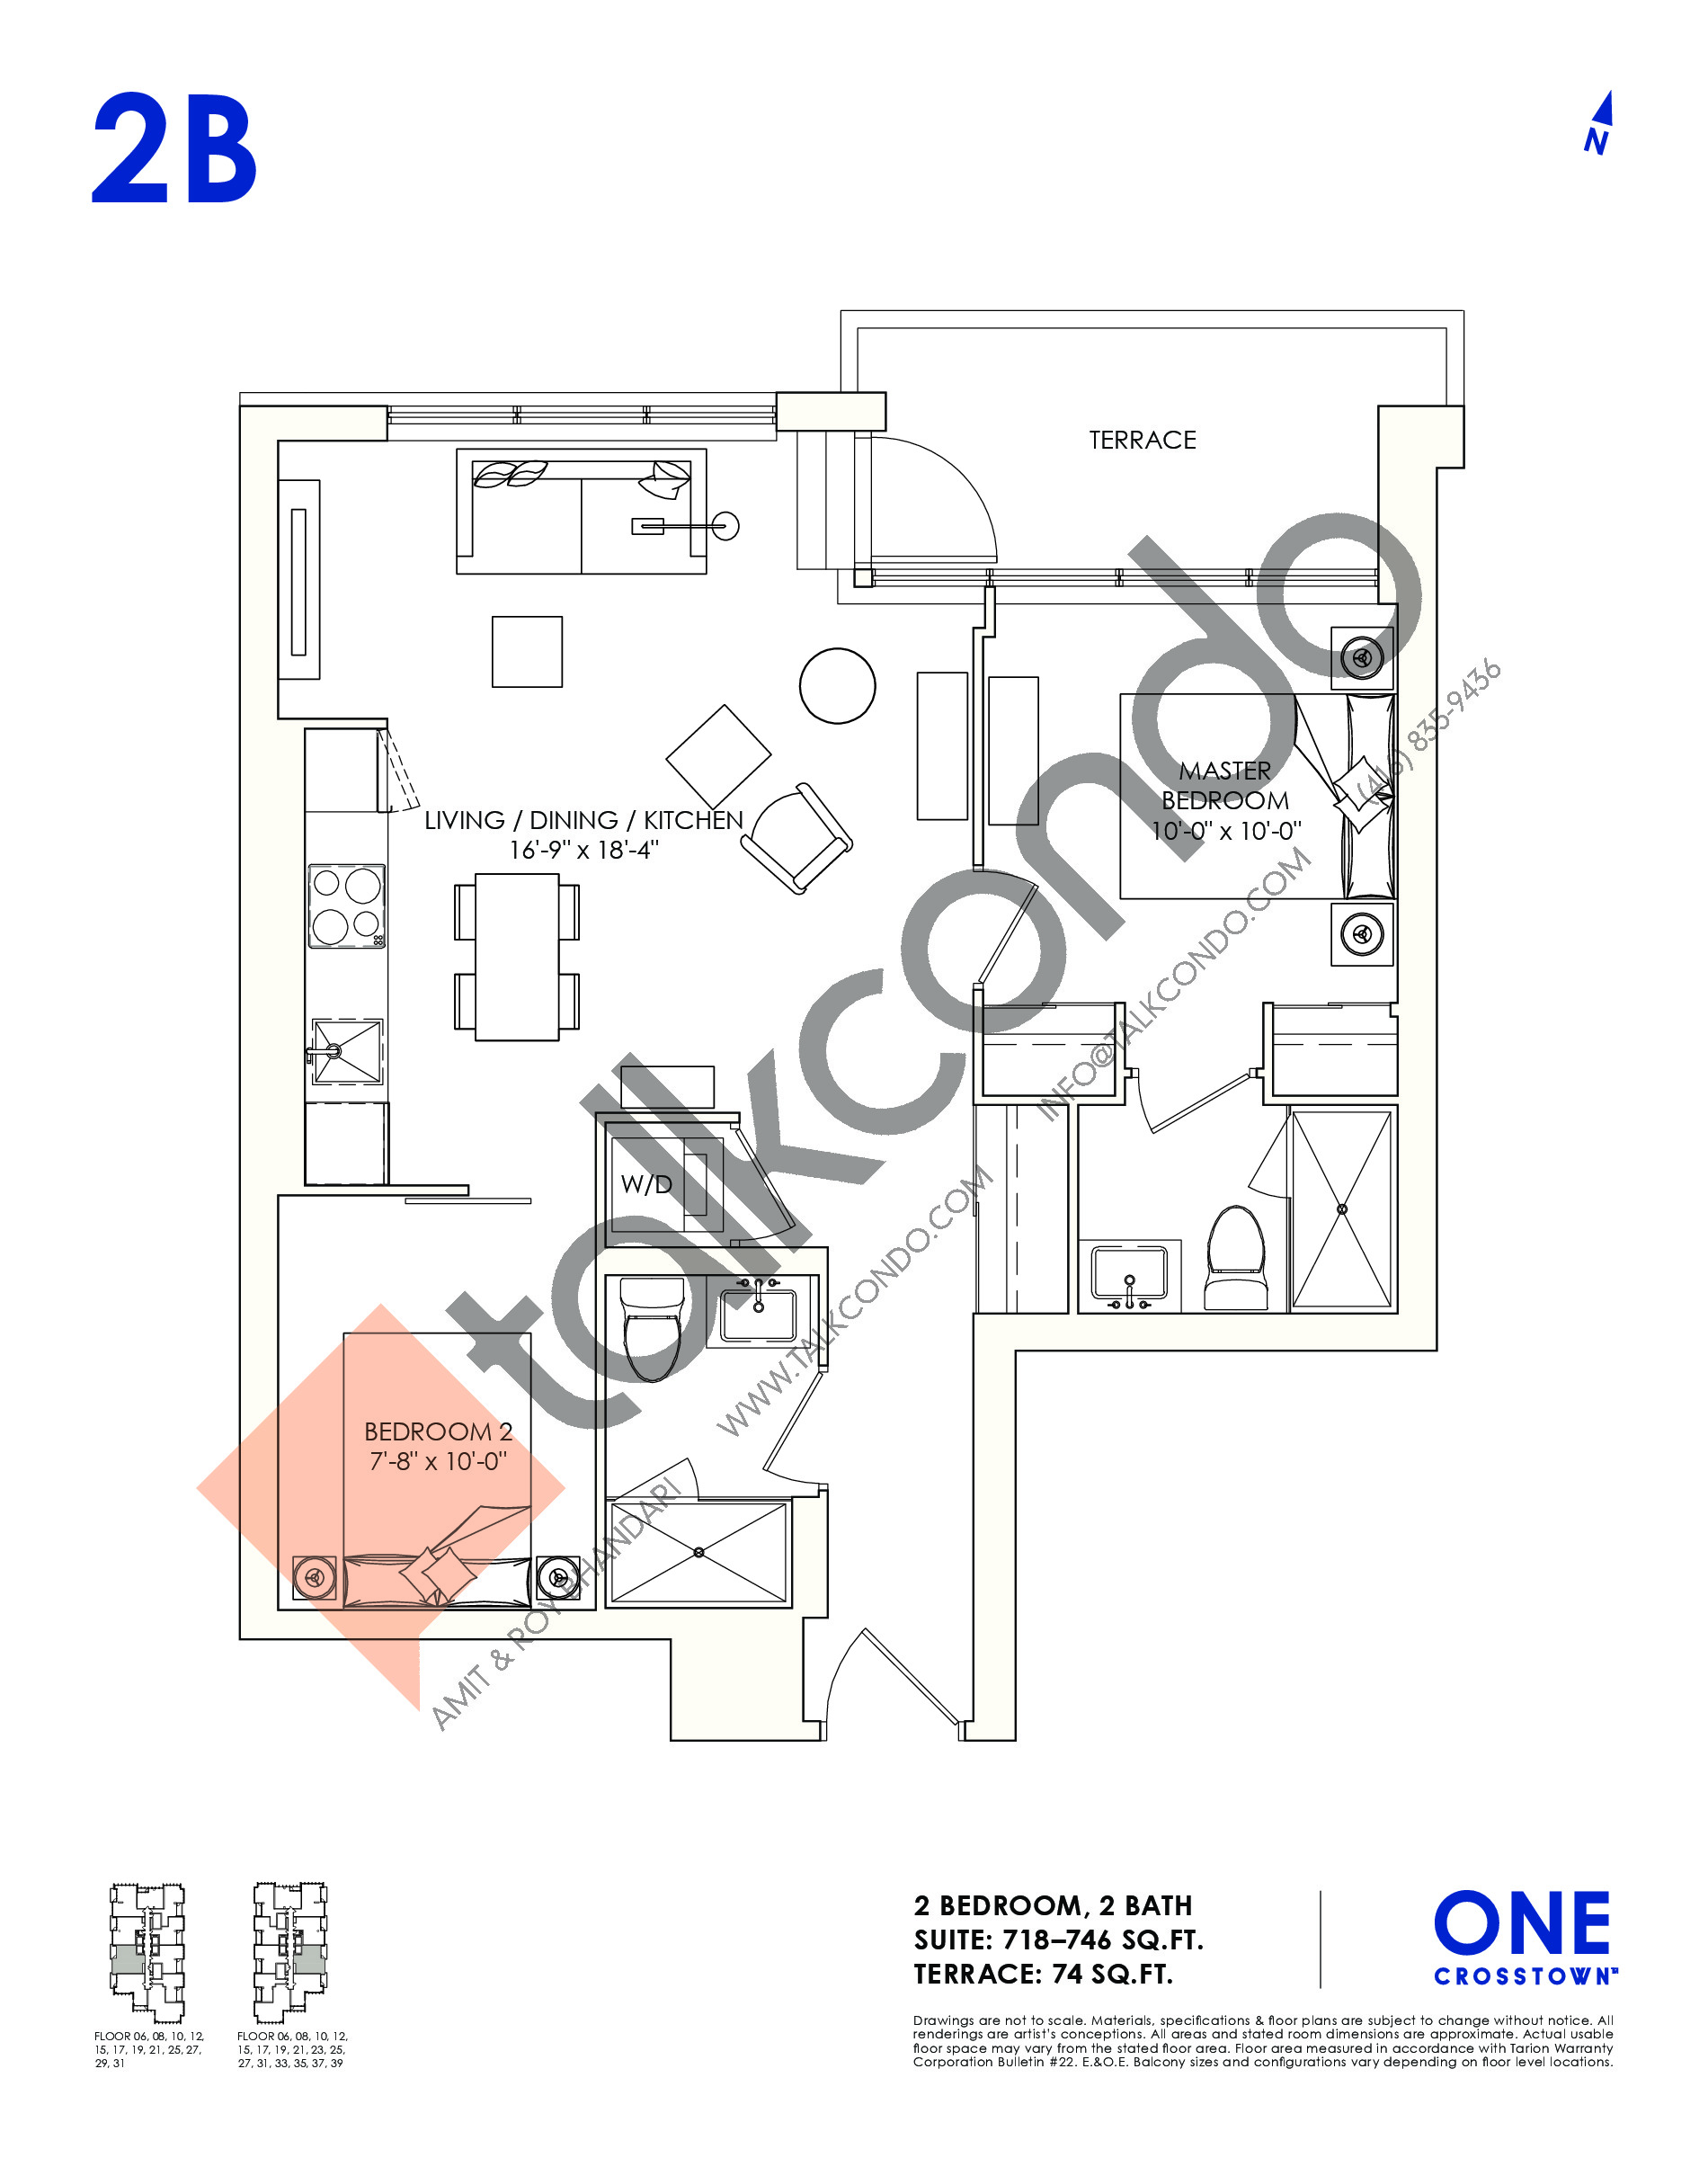 2B Floor Plan at One Crosstown Condos - 746 sq.ft